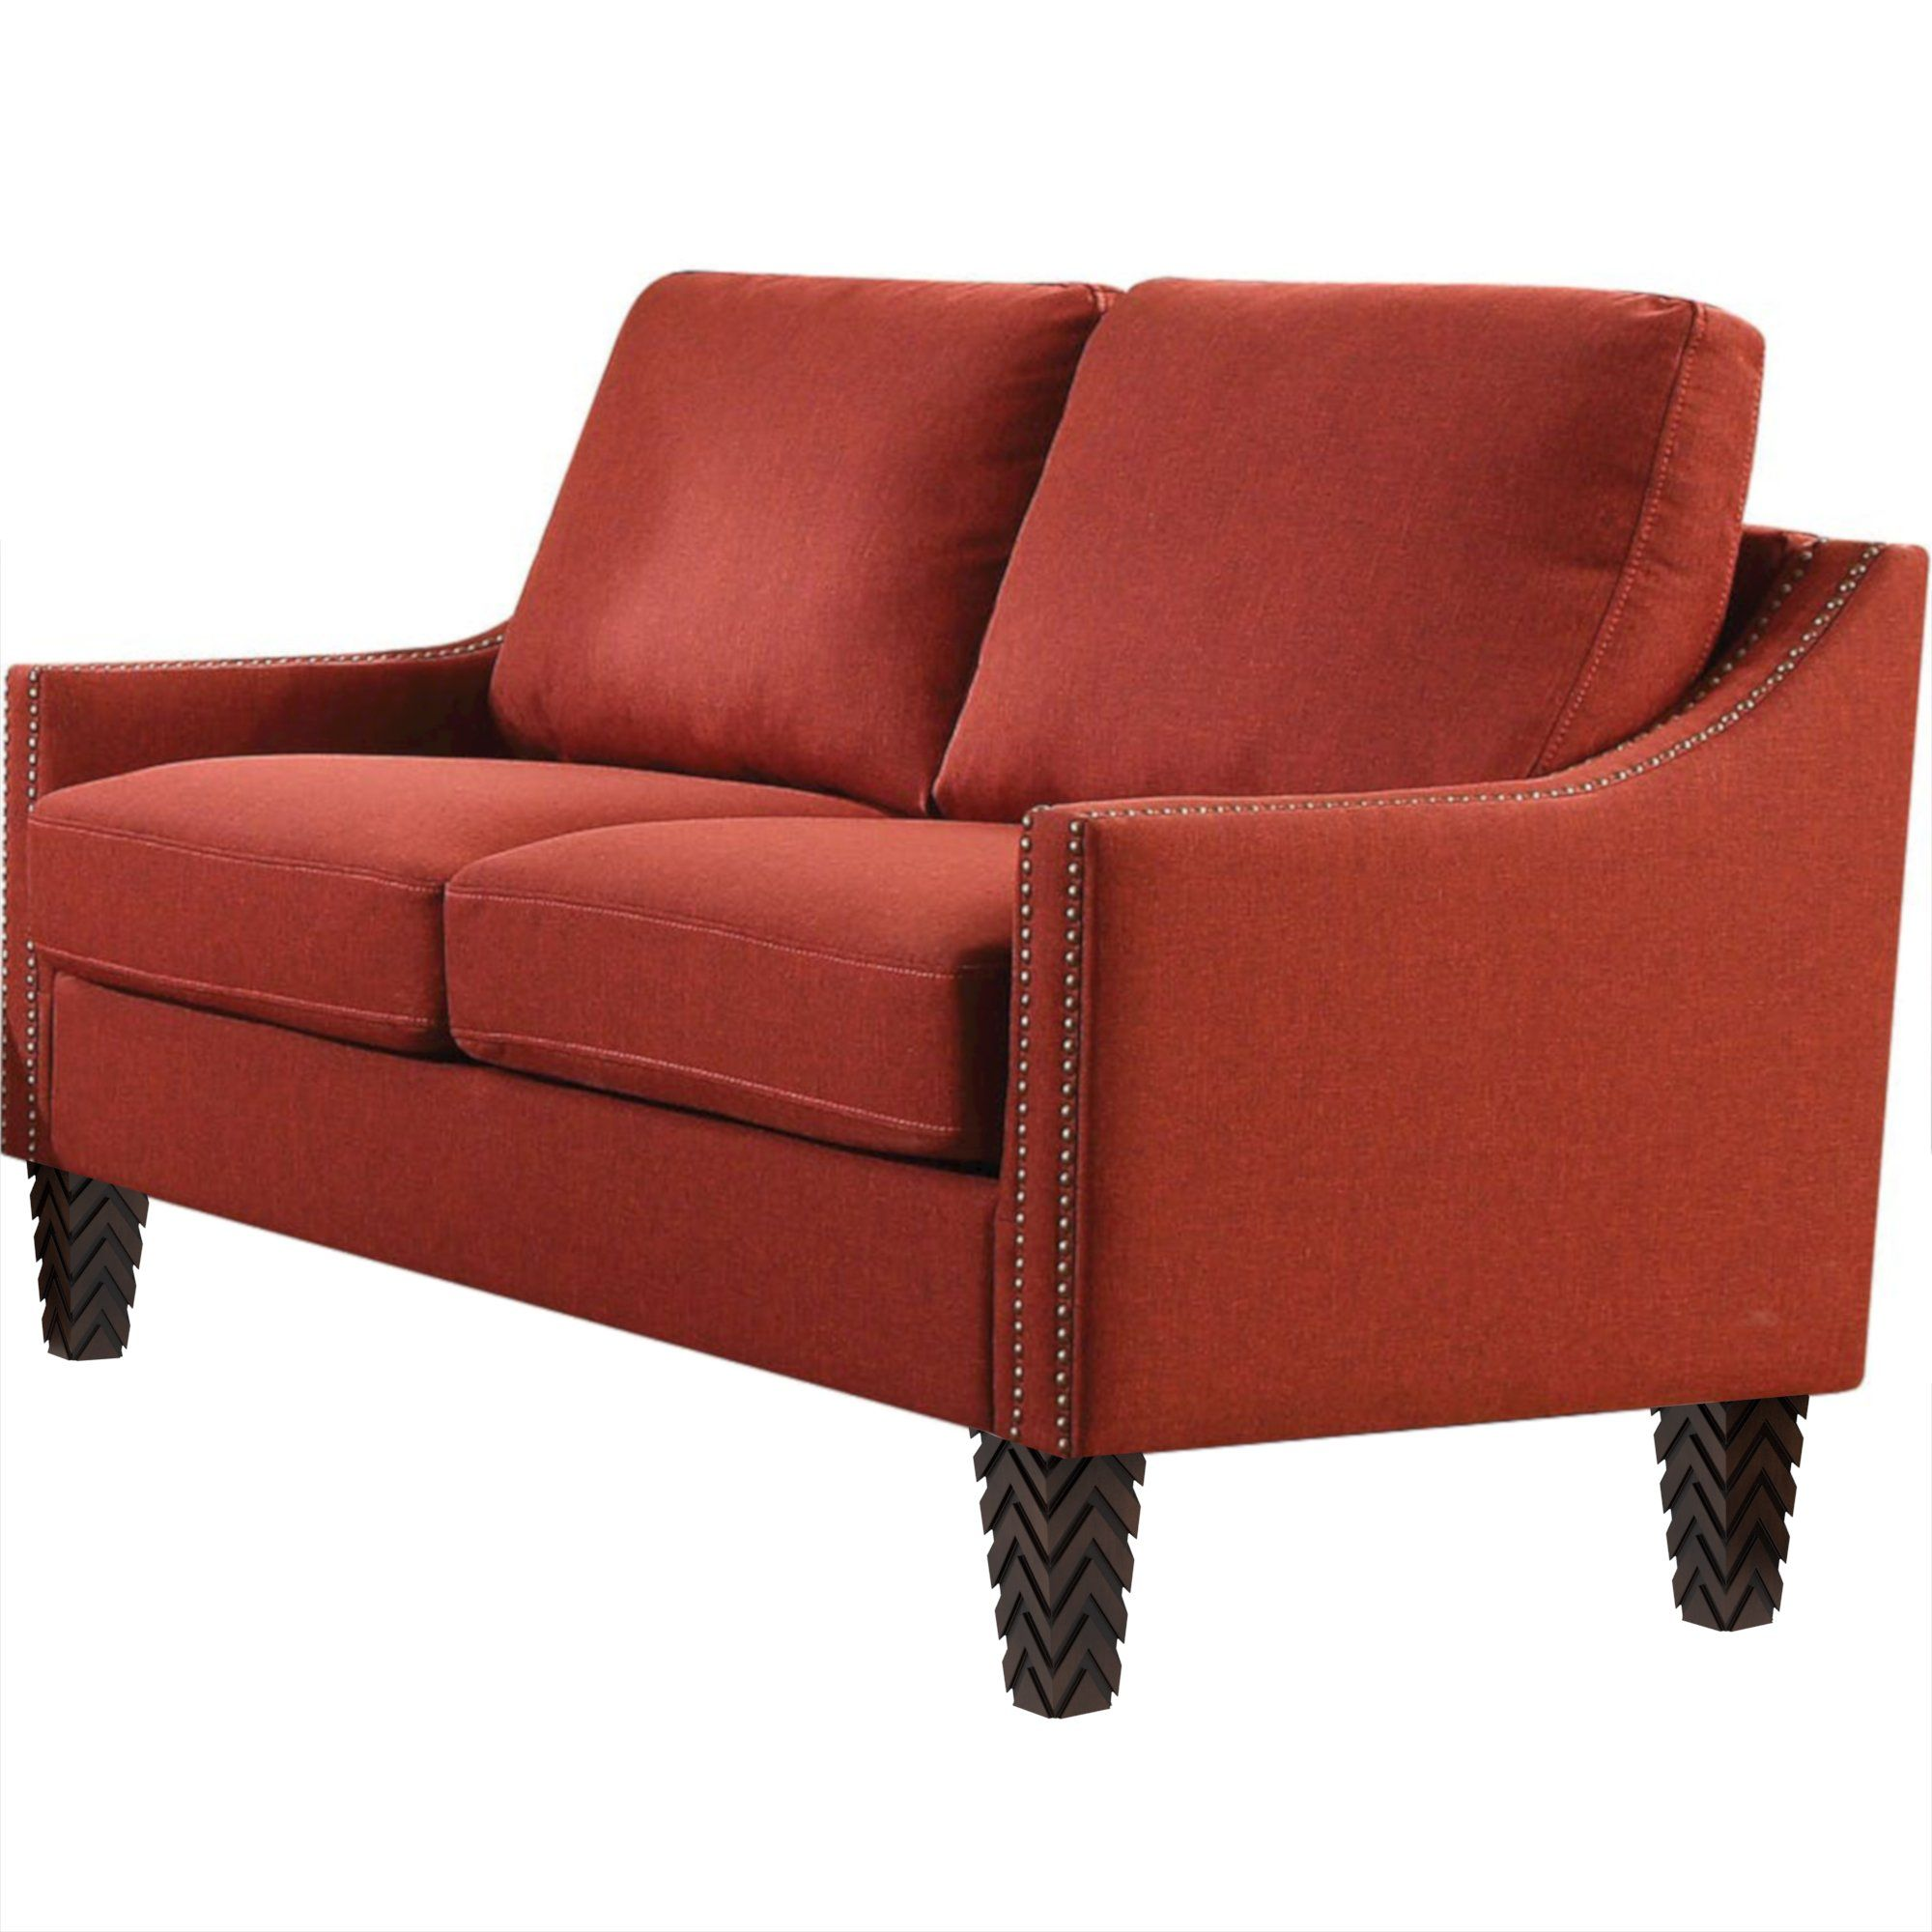 "Red Zaar Loveseat with Nailheads (58"")"